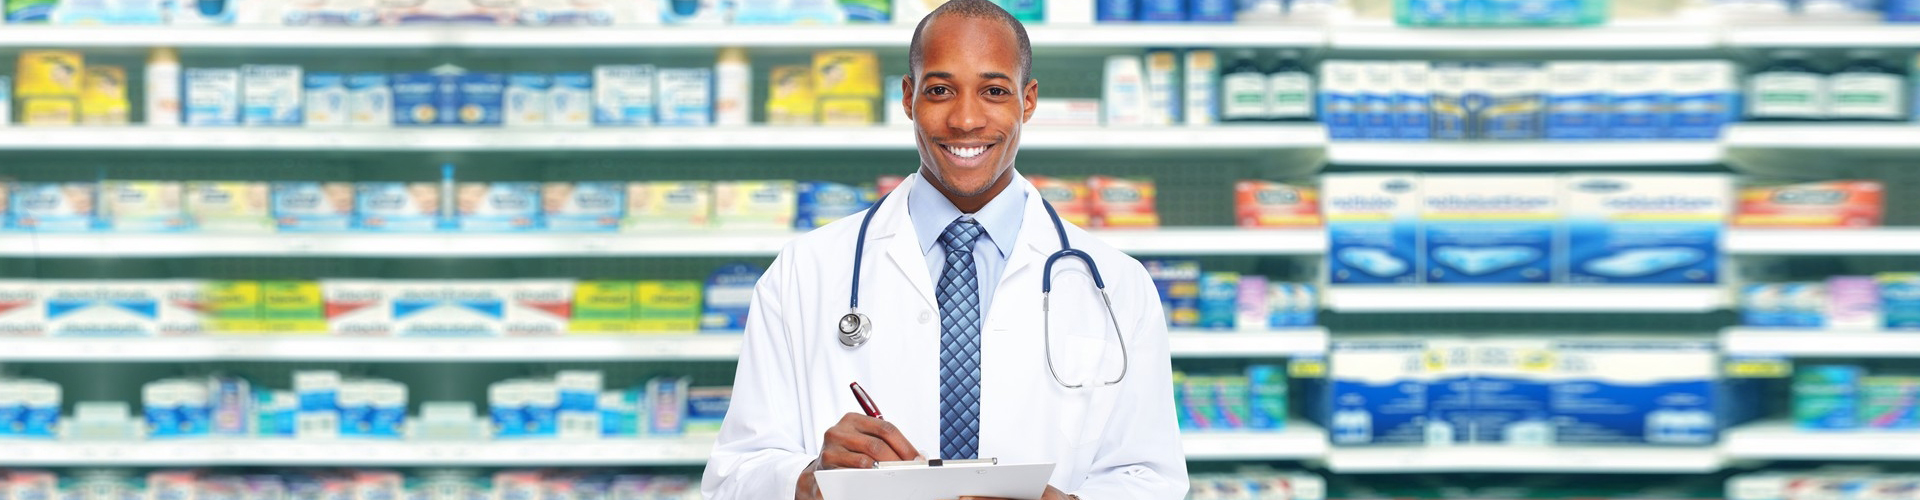 a pharmacist smiling, medicine stocks in the background